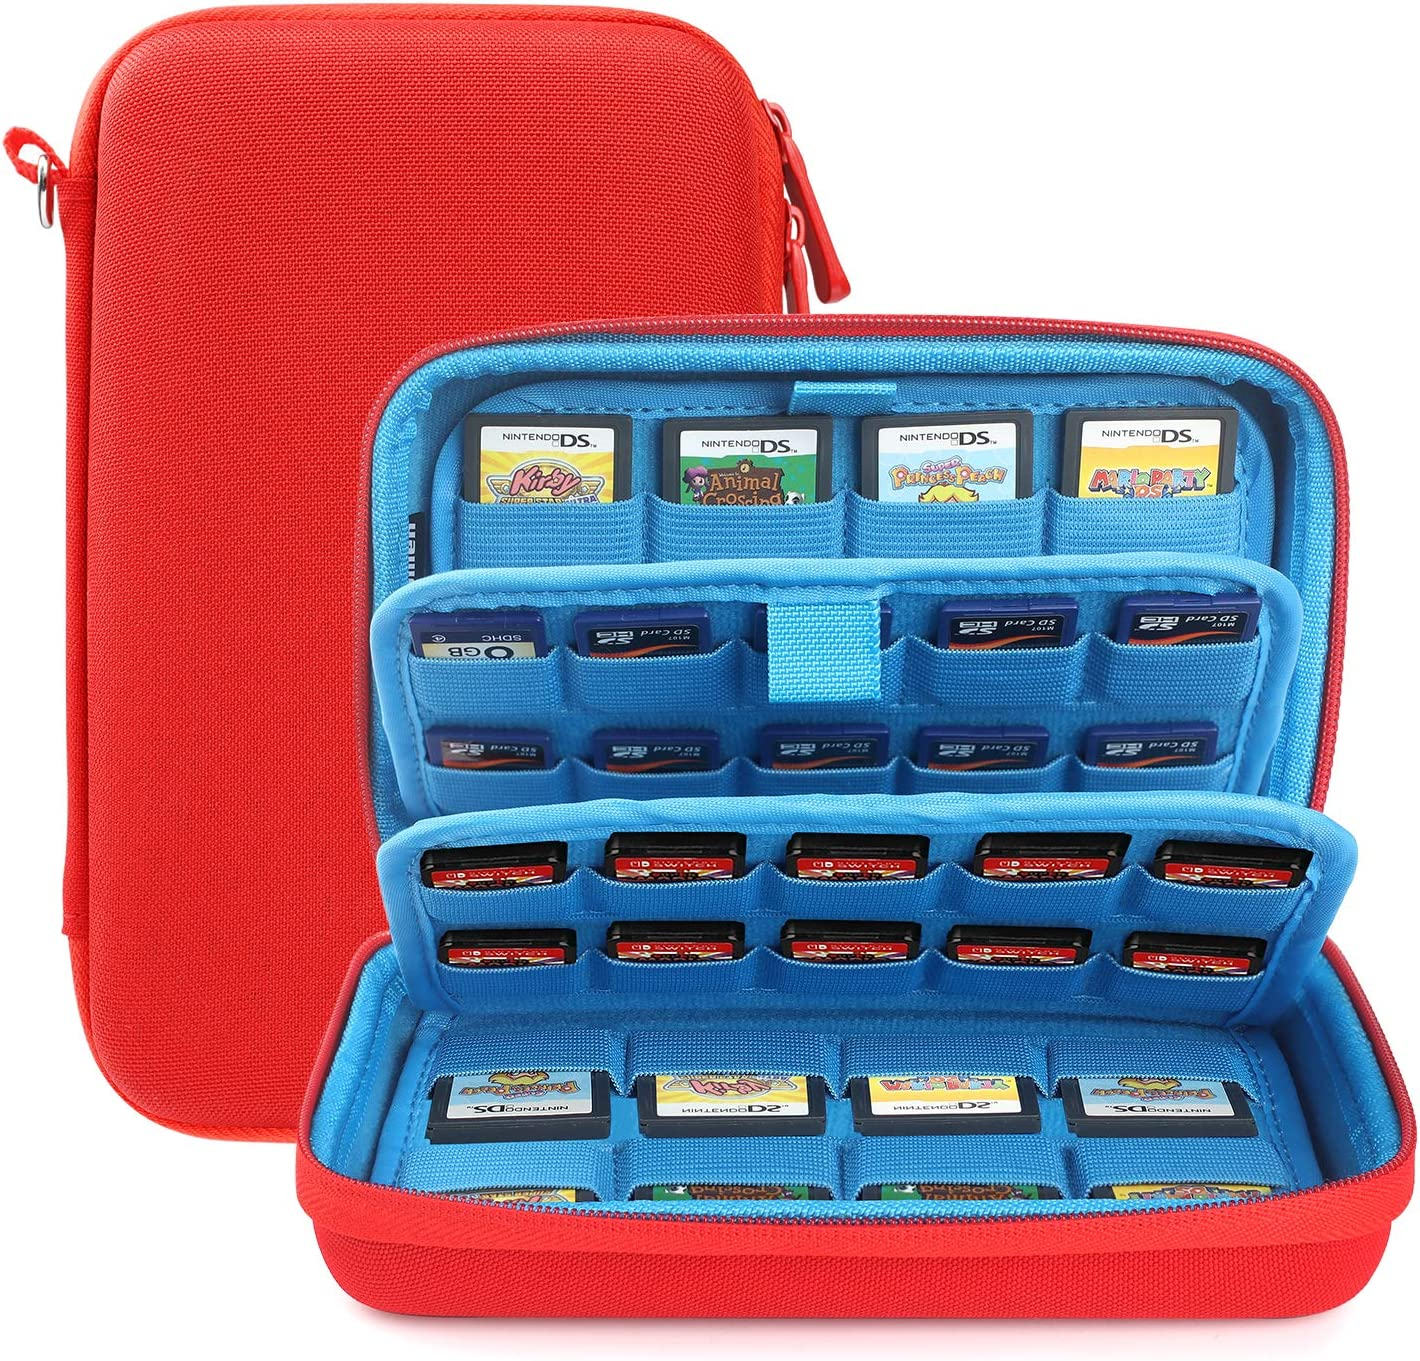 momen Game Case Have 72 in 1Game Cartridge Holders Storage Bag for Nintendo Swicth 3DS/2DS/DS /PS Vita Micro/SD Memory Cards.( Red)